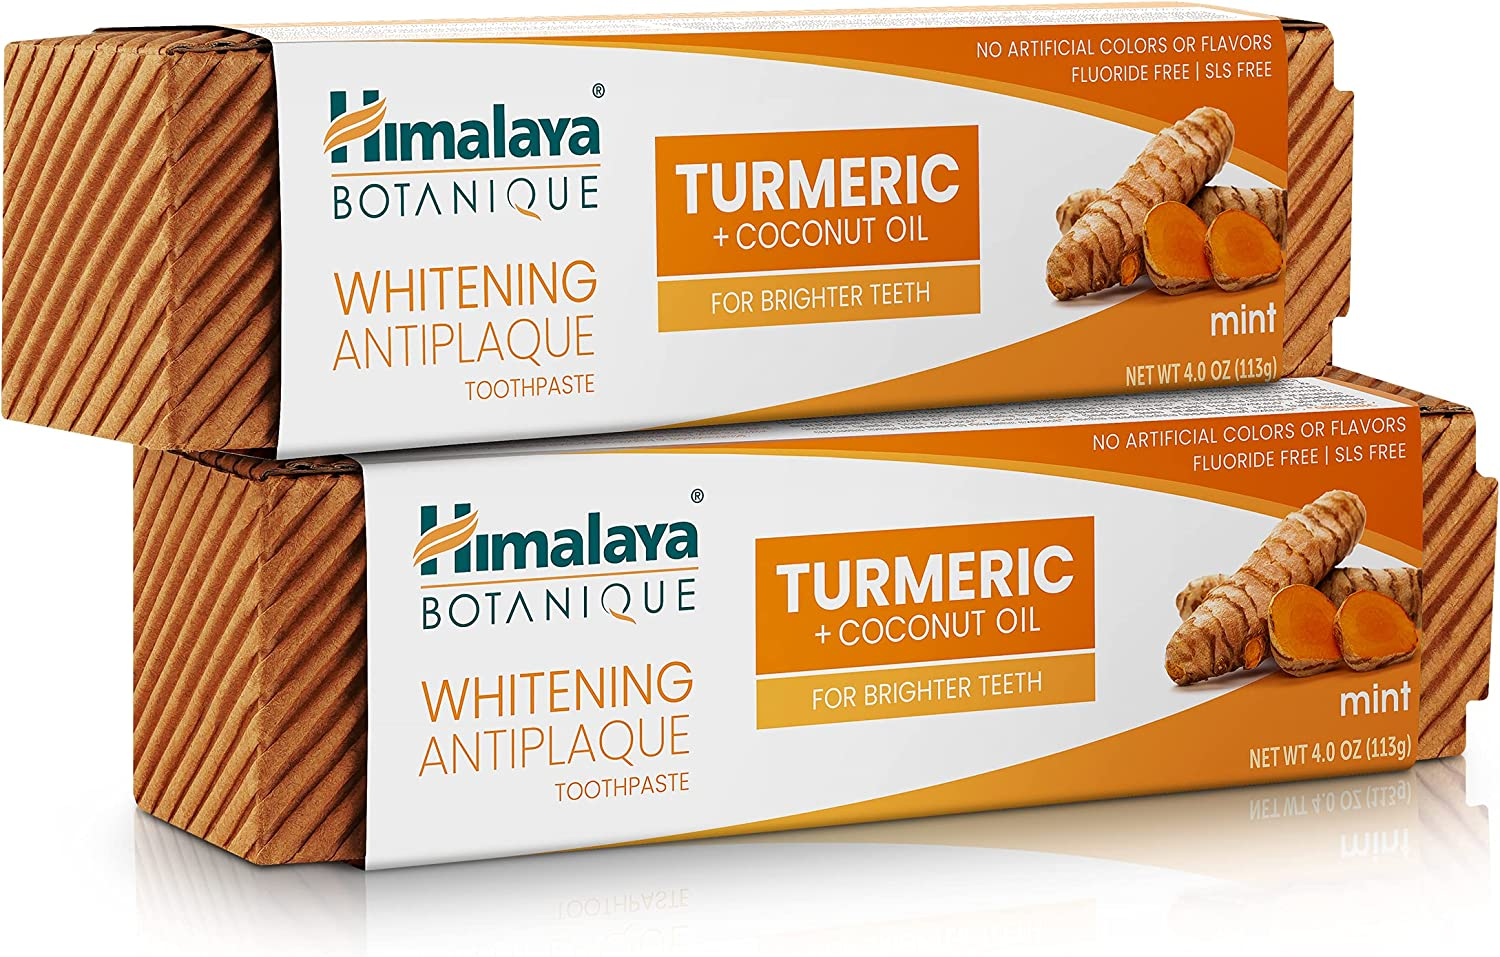 Himalaya Whitening Super-cheap Antiplaque Toothpaste Outlet ☆ Free Shipping + Turmeric Coconut with